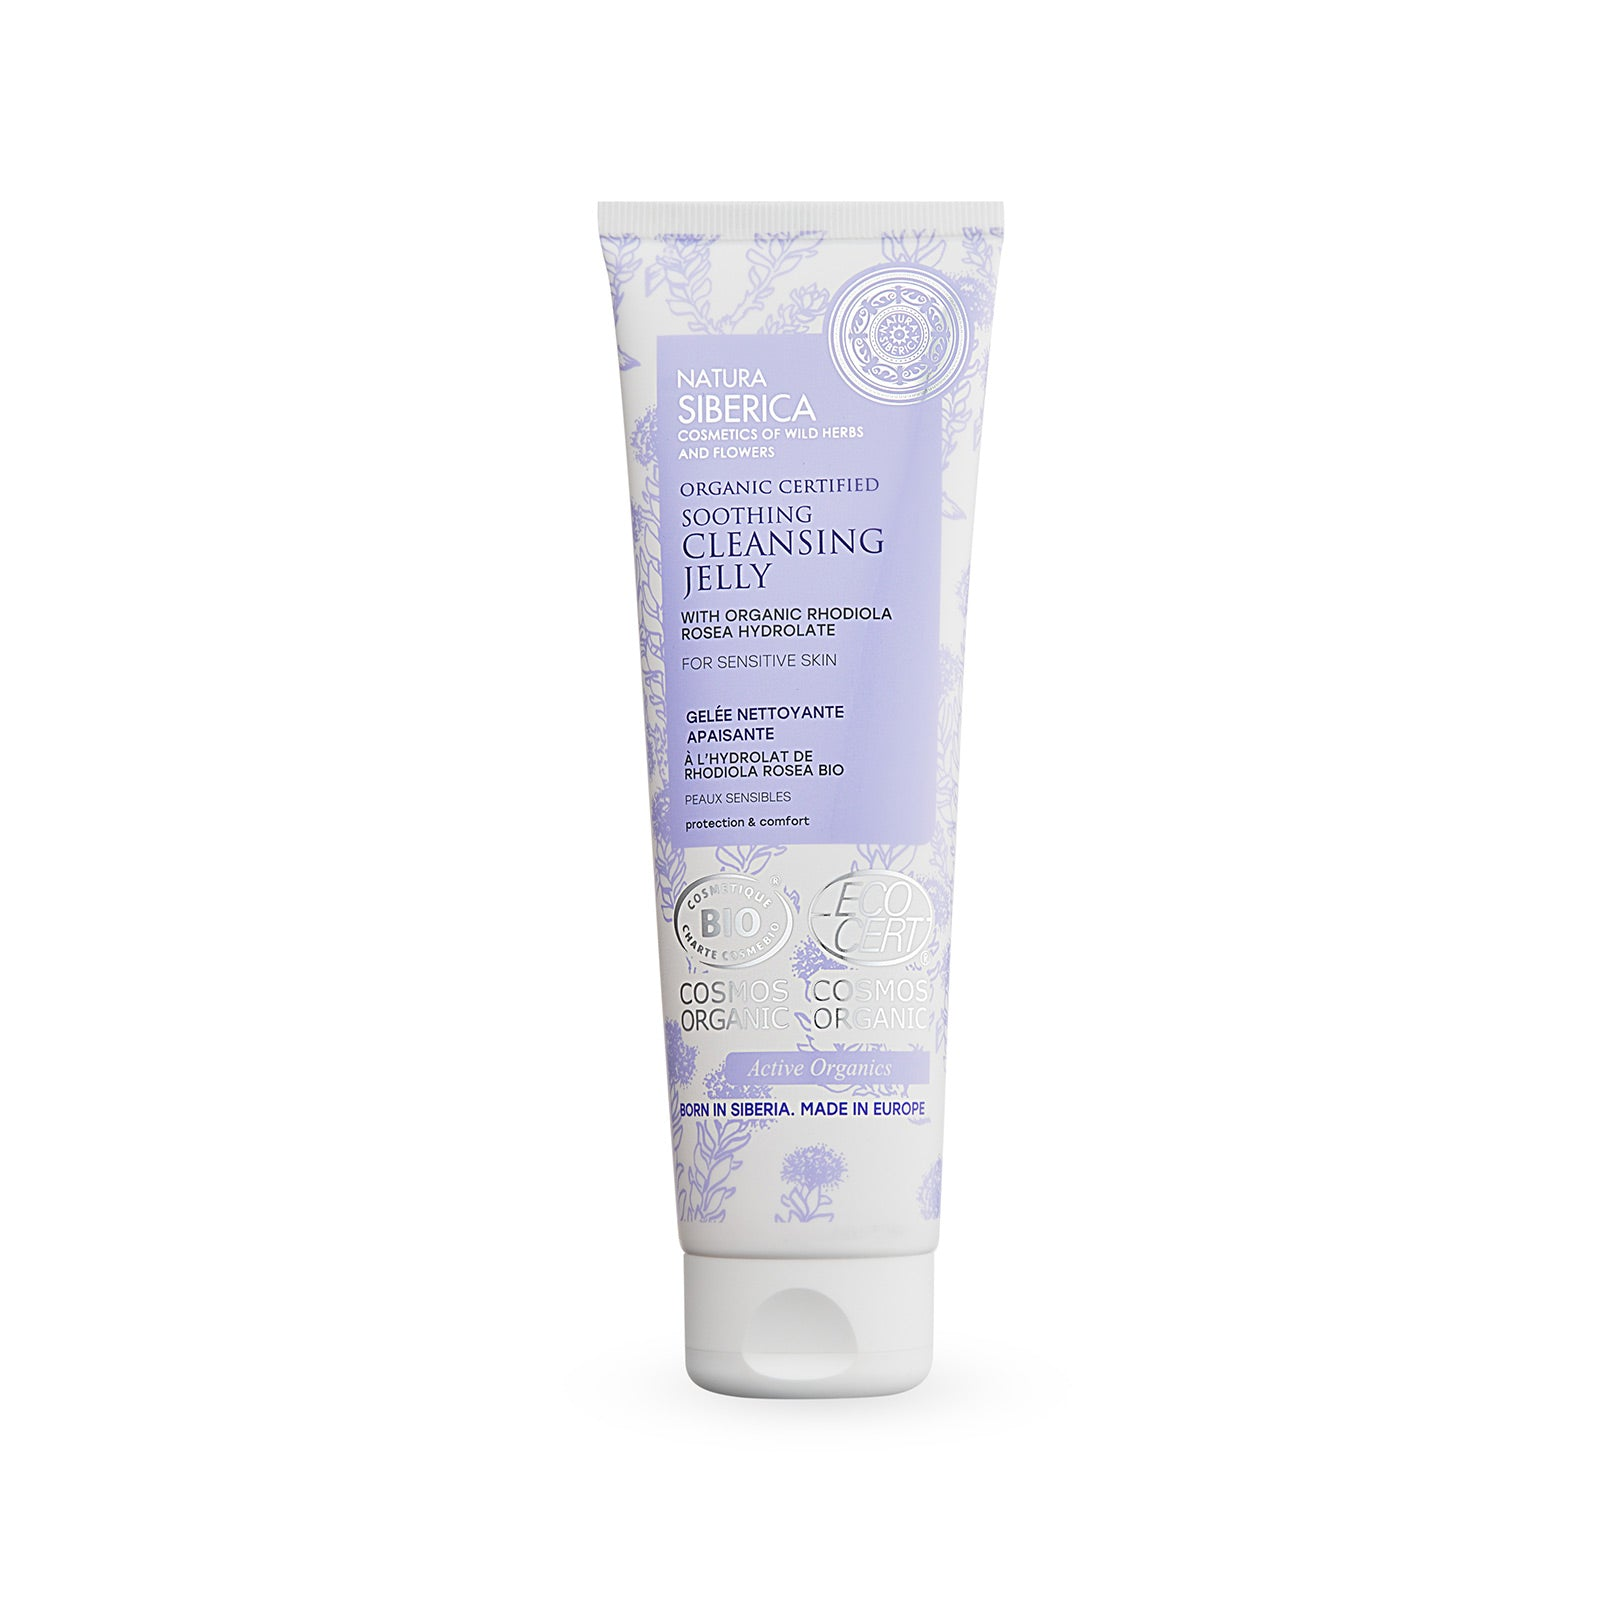 Soothing Cleansing Jelly for sensitive skin, 140 ml